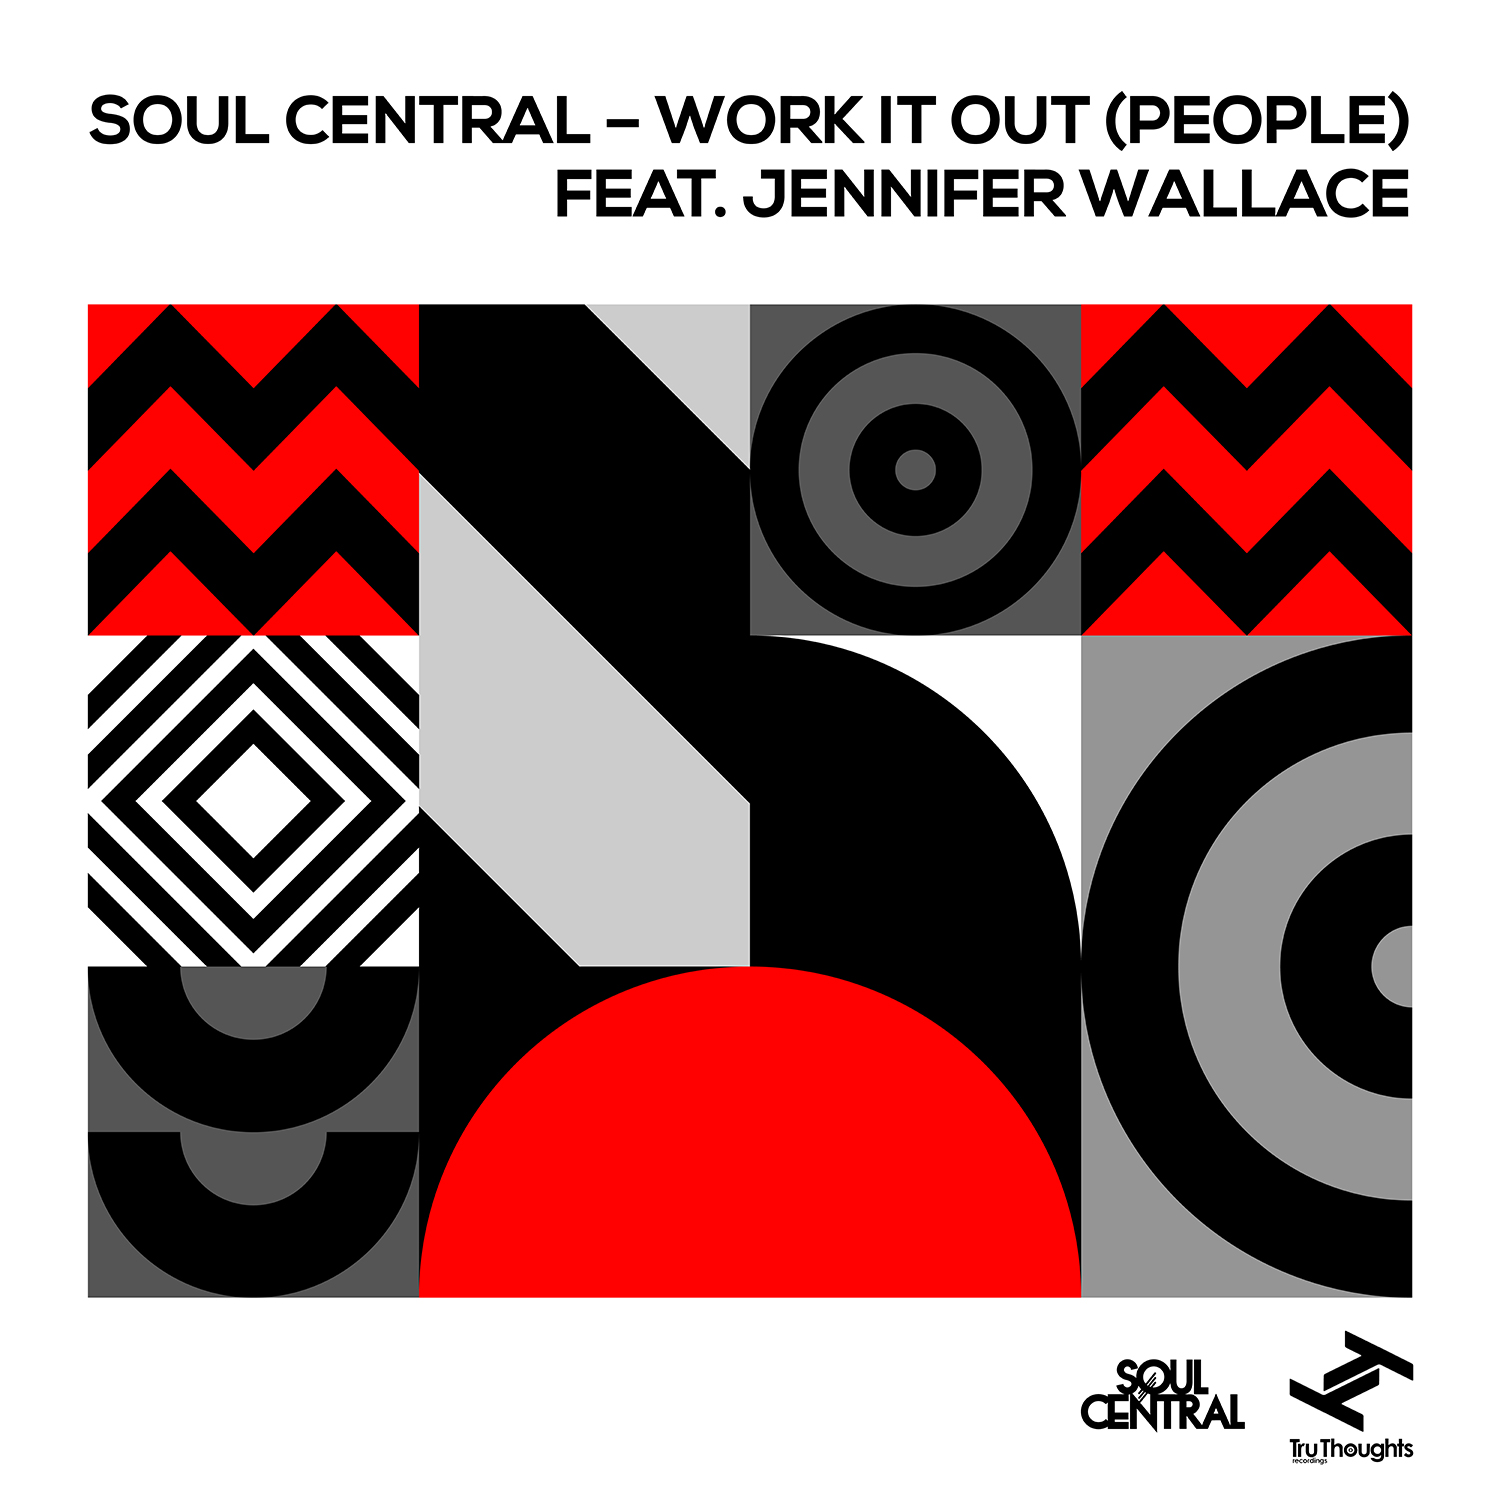 SOUL CENTRAL FT. JENNIFER WALLACE – 'WORK IT OUT (PEOPLE)'